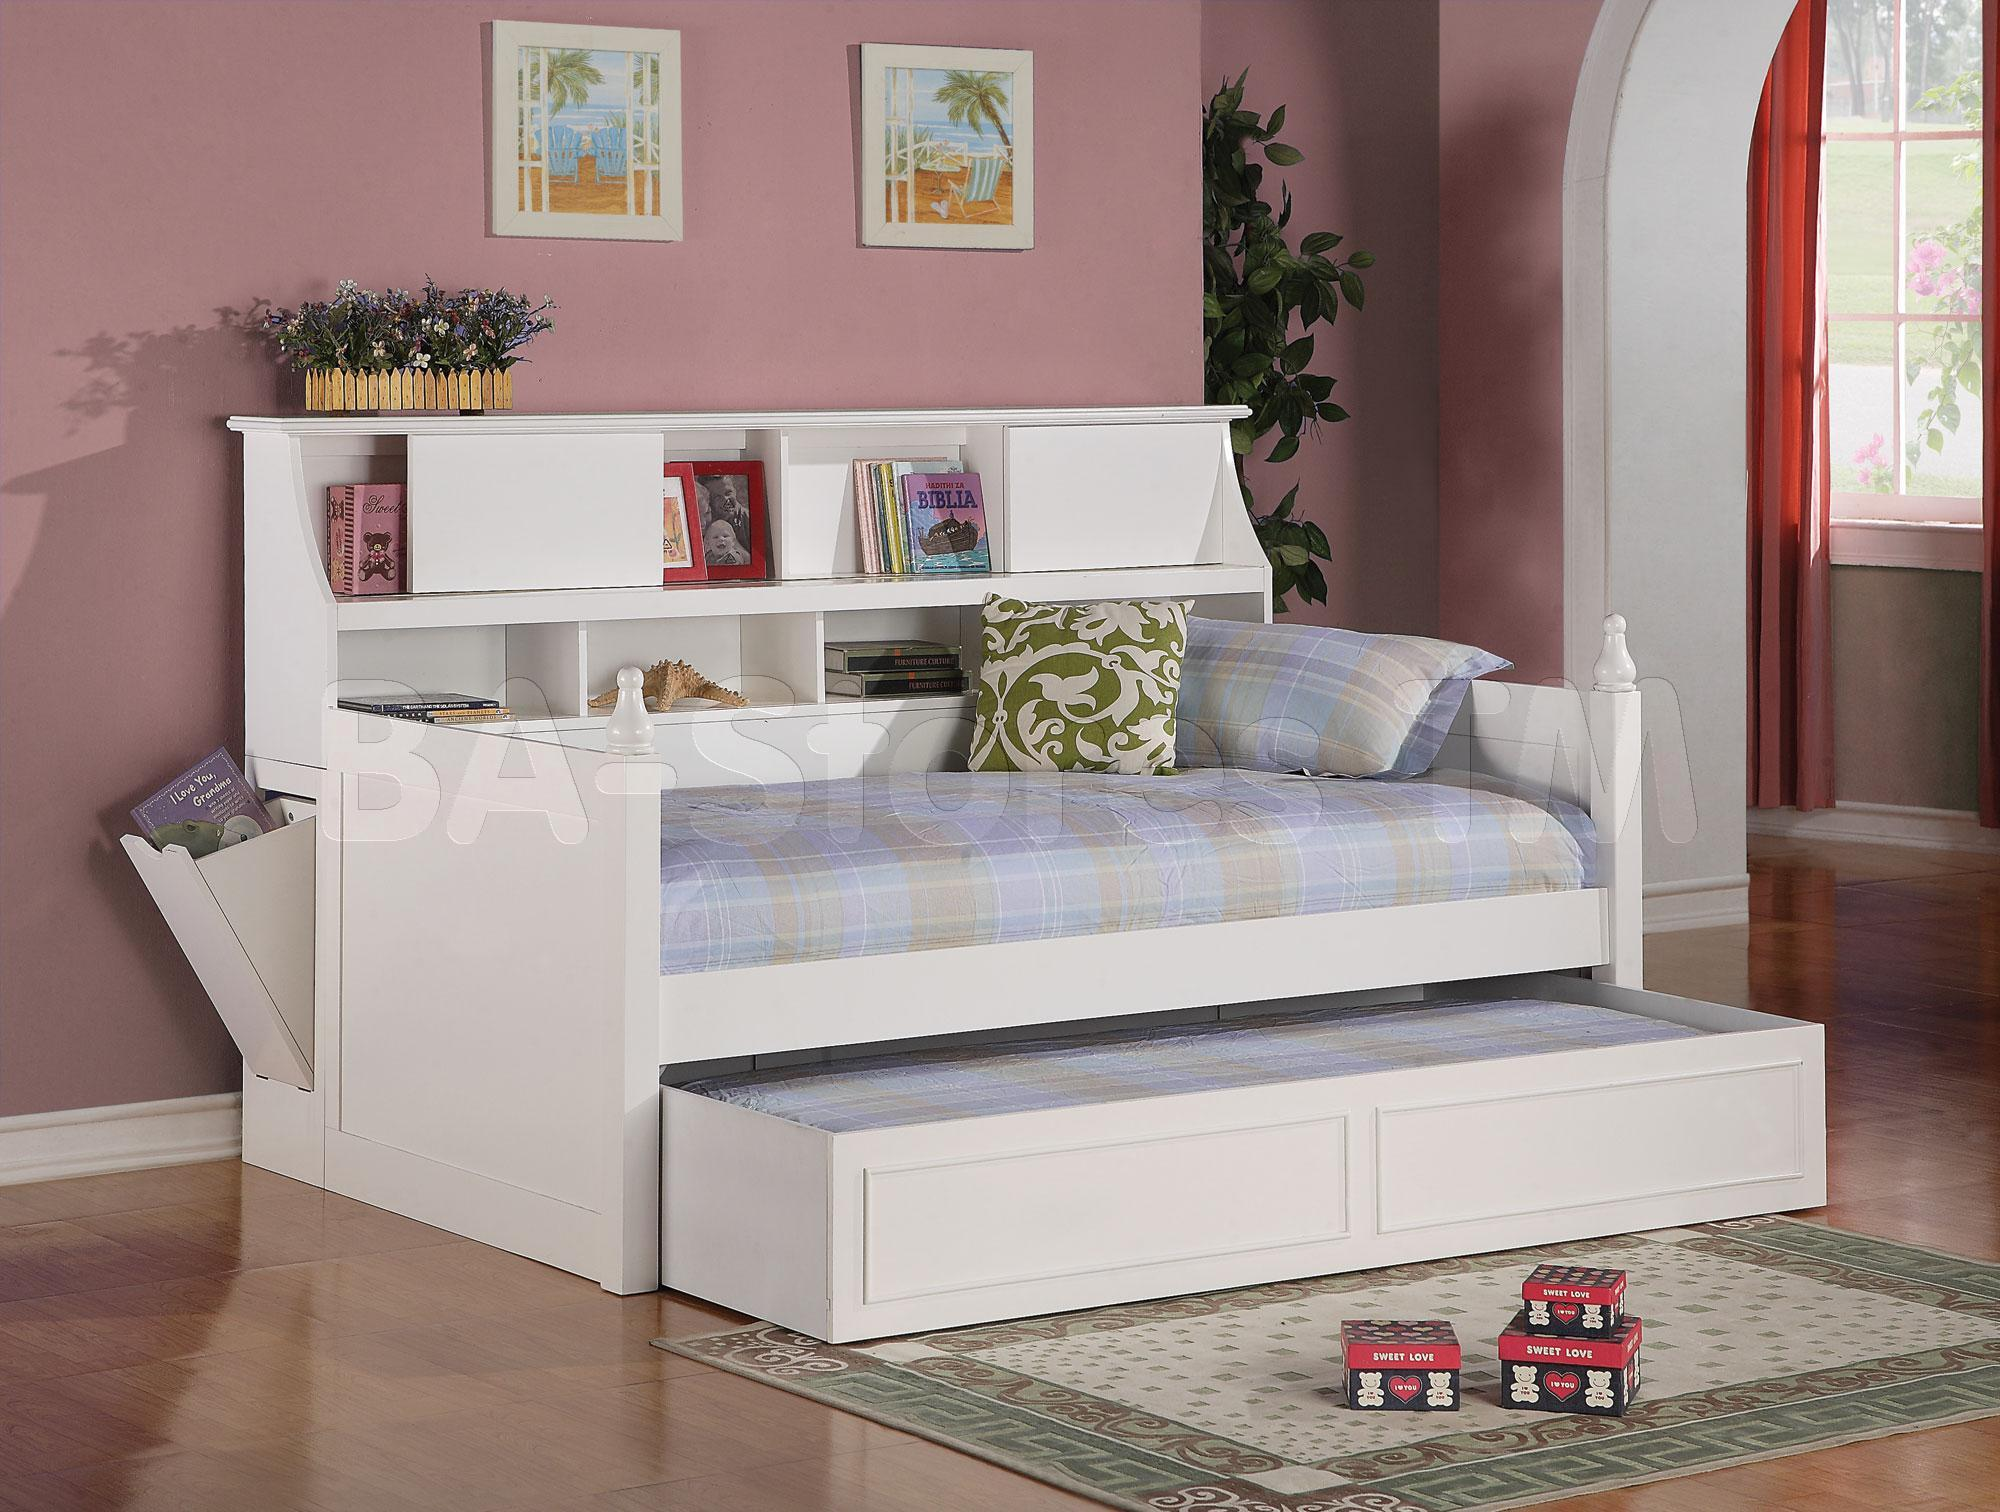 cool white twin bed frames with storage places drawers for books and toys decor by nice - Twin Bed Frame With Storage